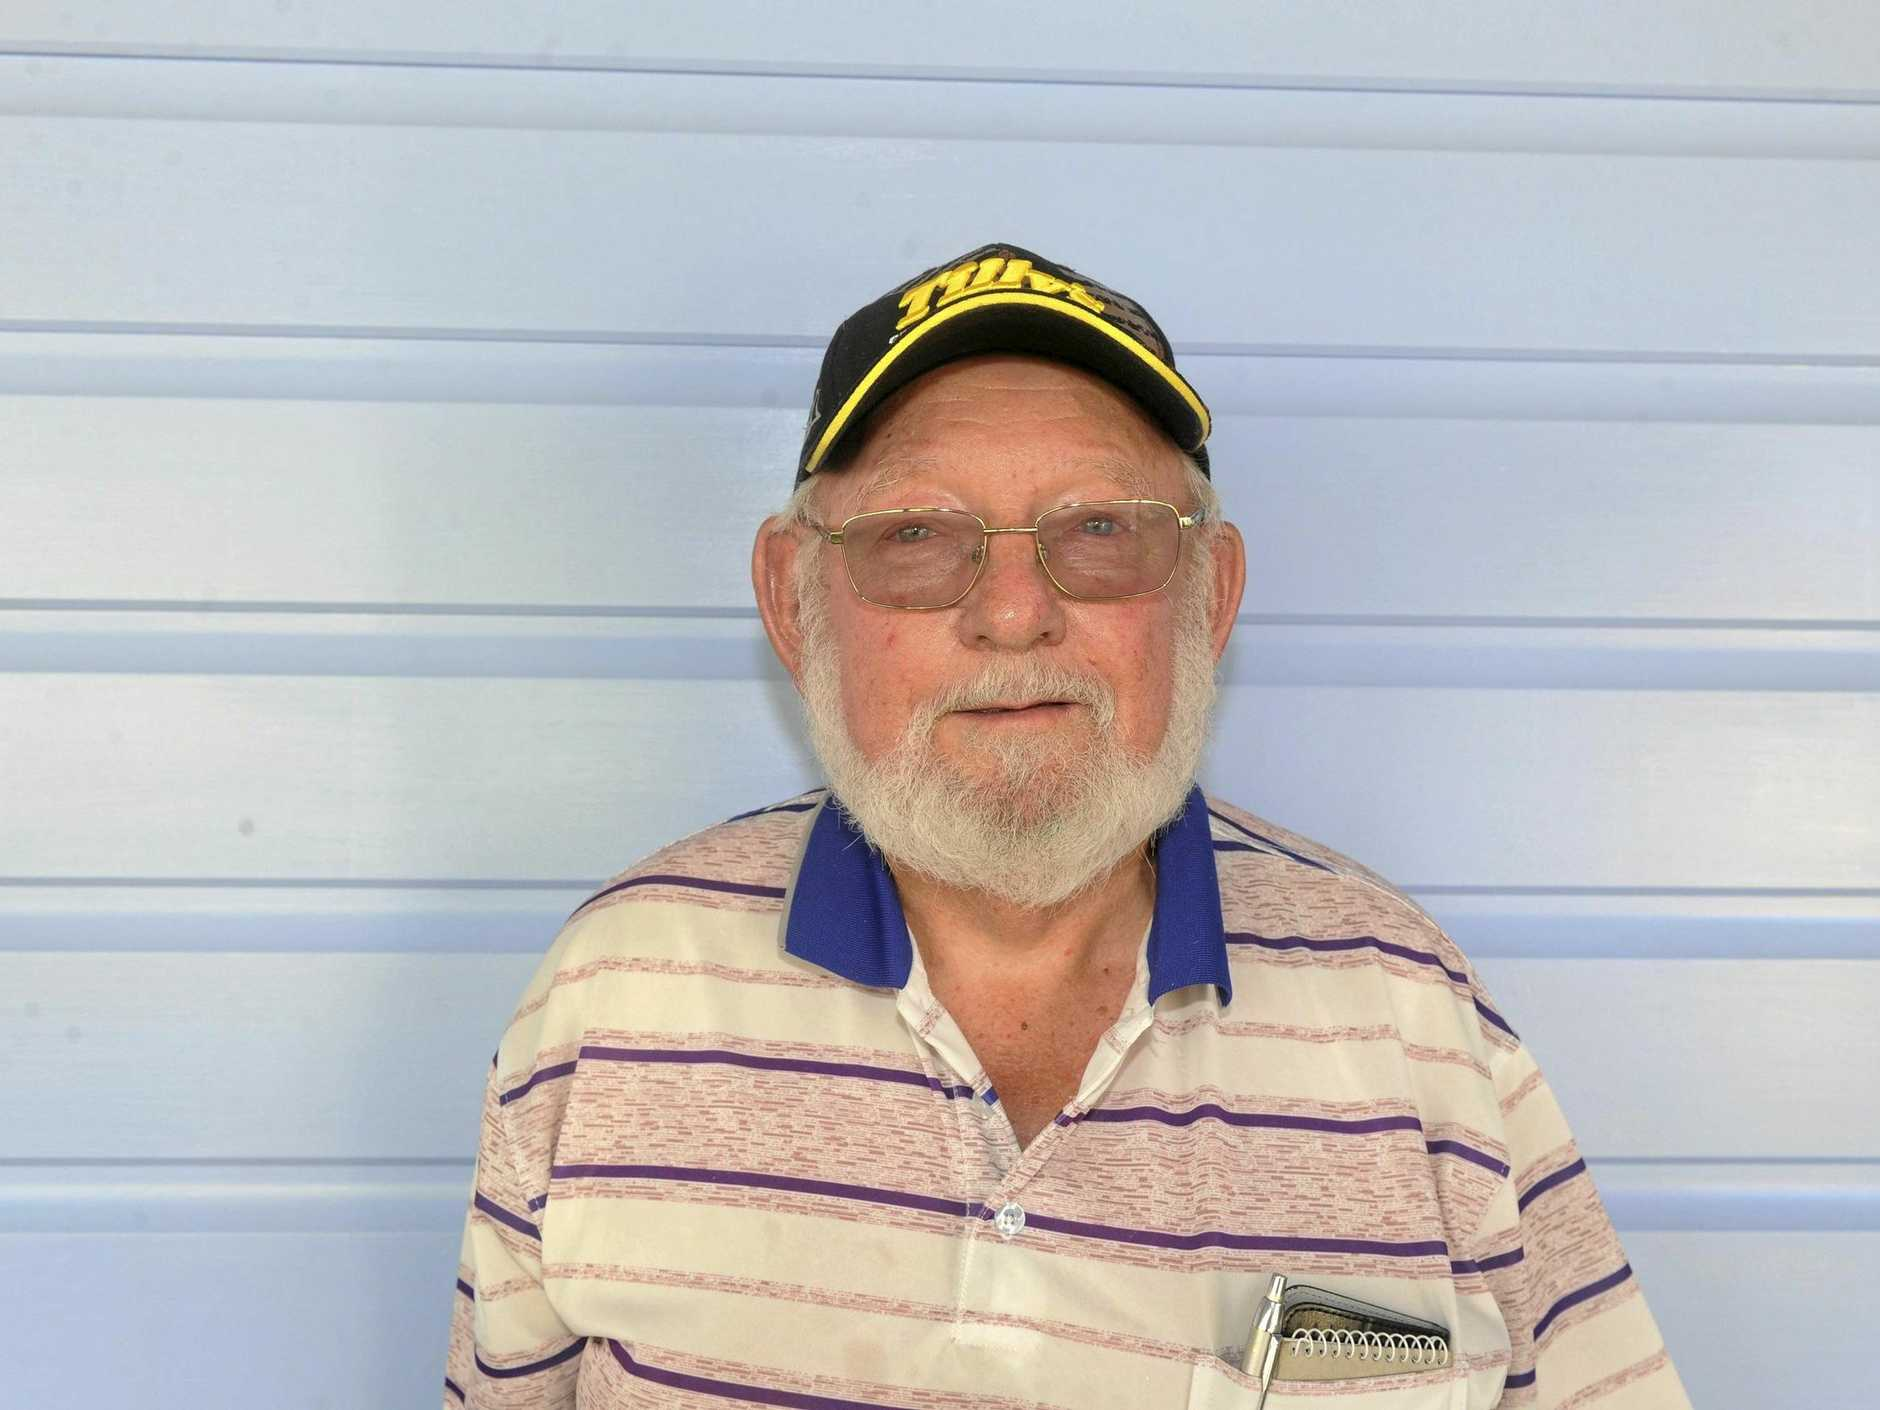 Don Frame, who was a pupil at Copmanhurst Public School for 3 years.